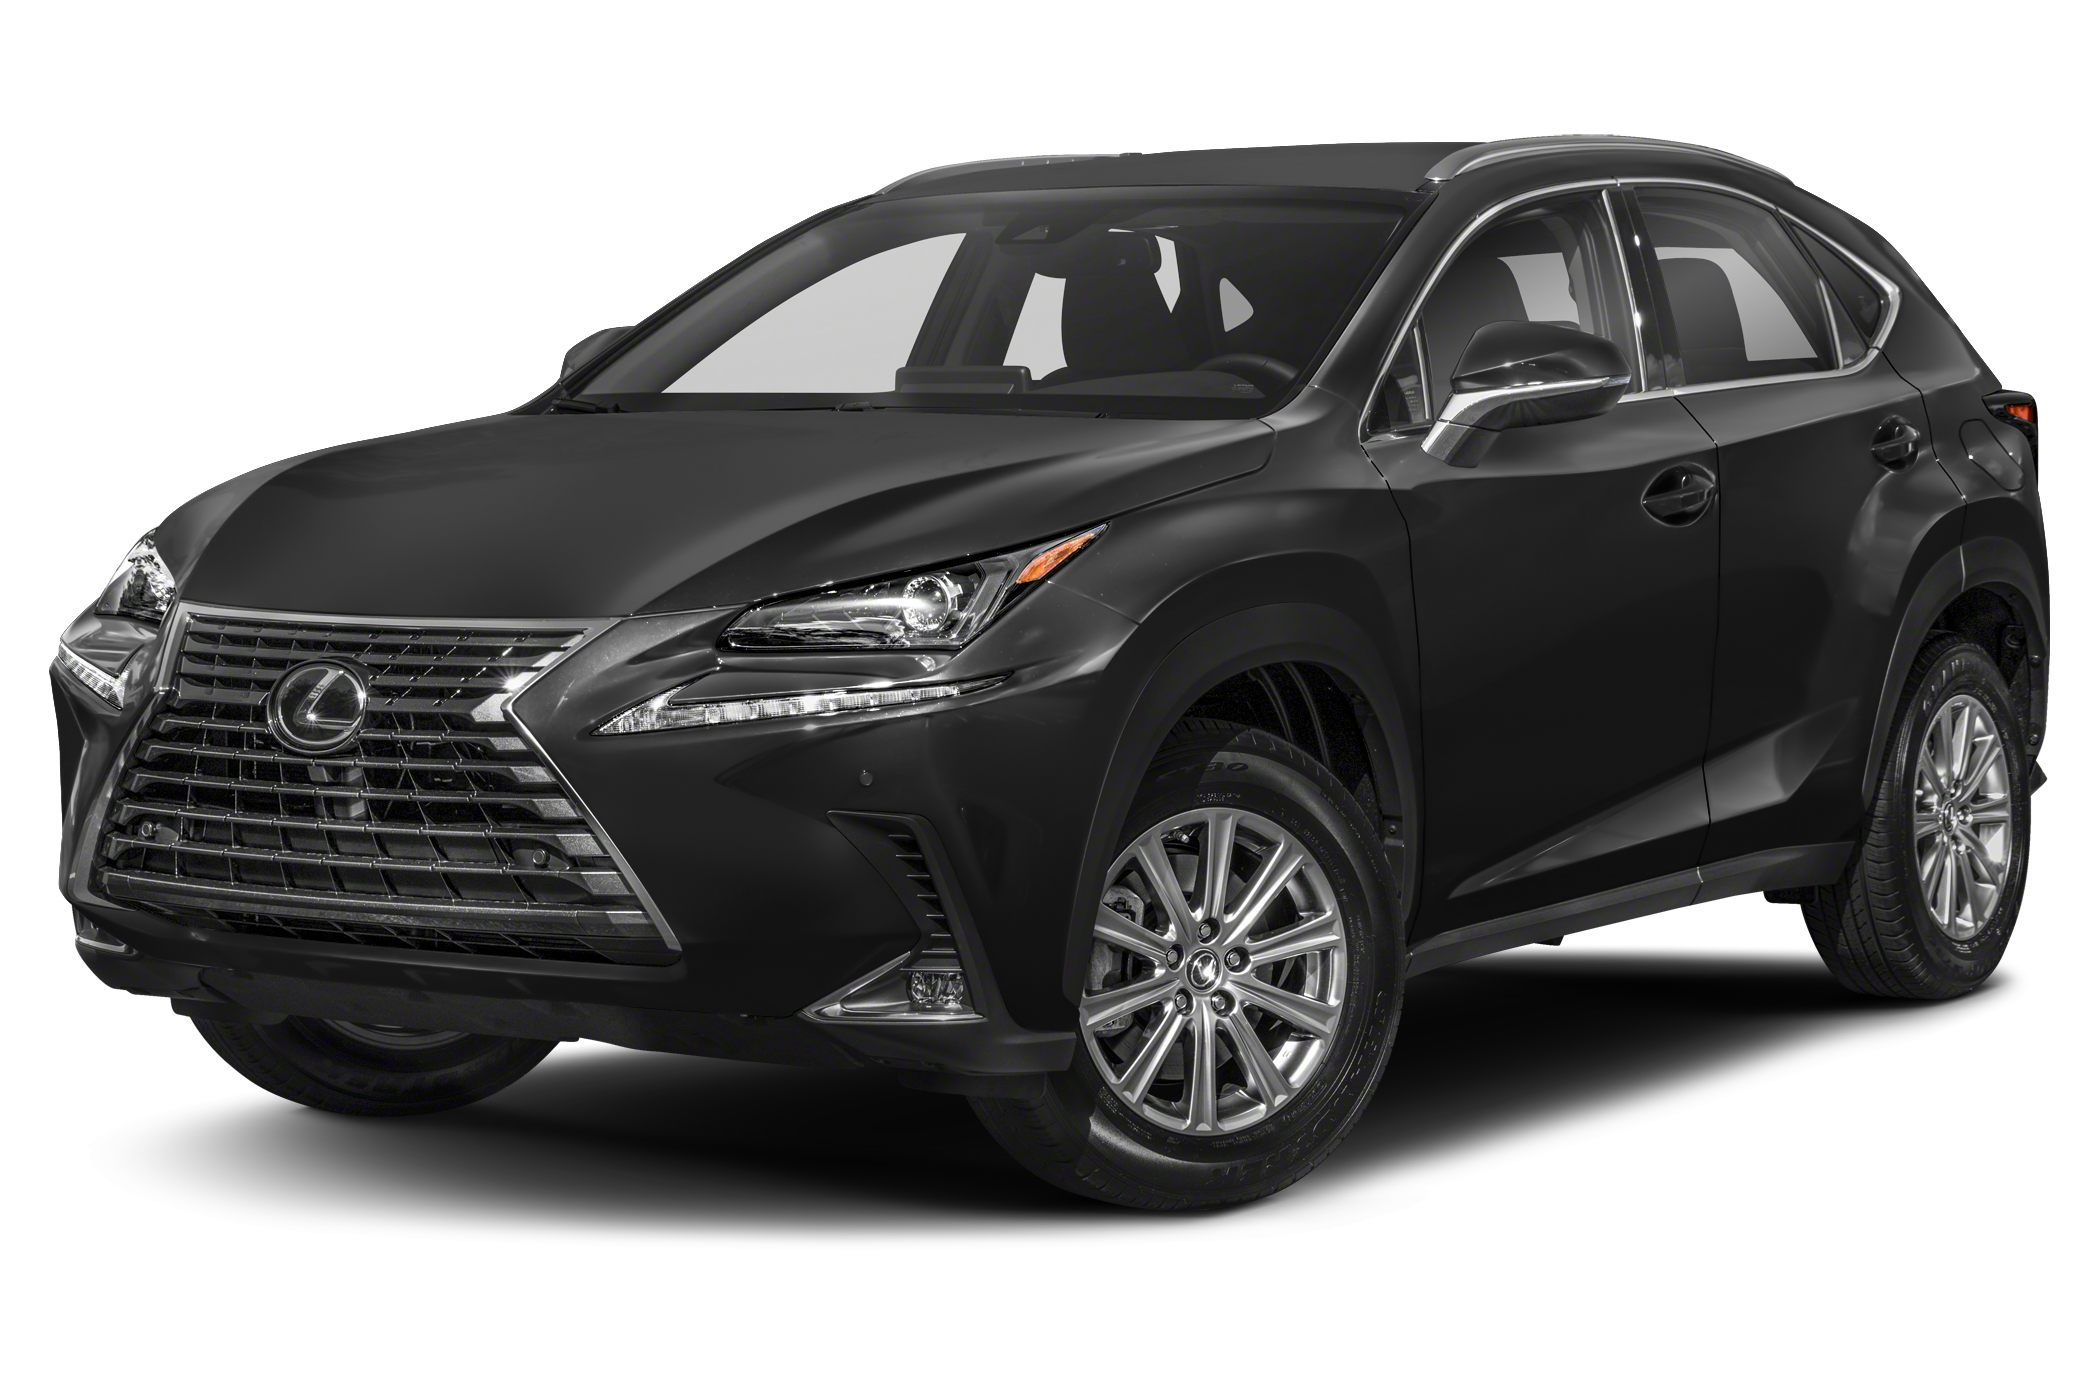 2020 Lexus NX 300 Luxury 4dr All-wheel Drive